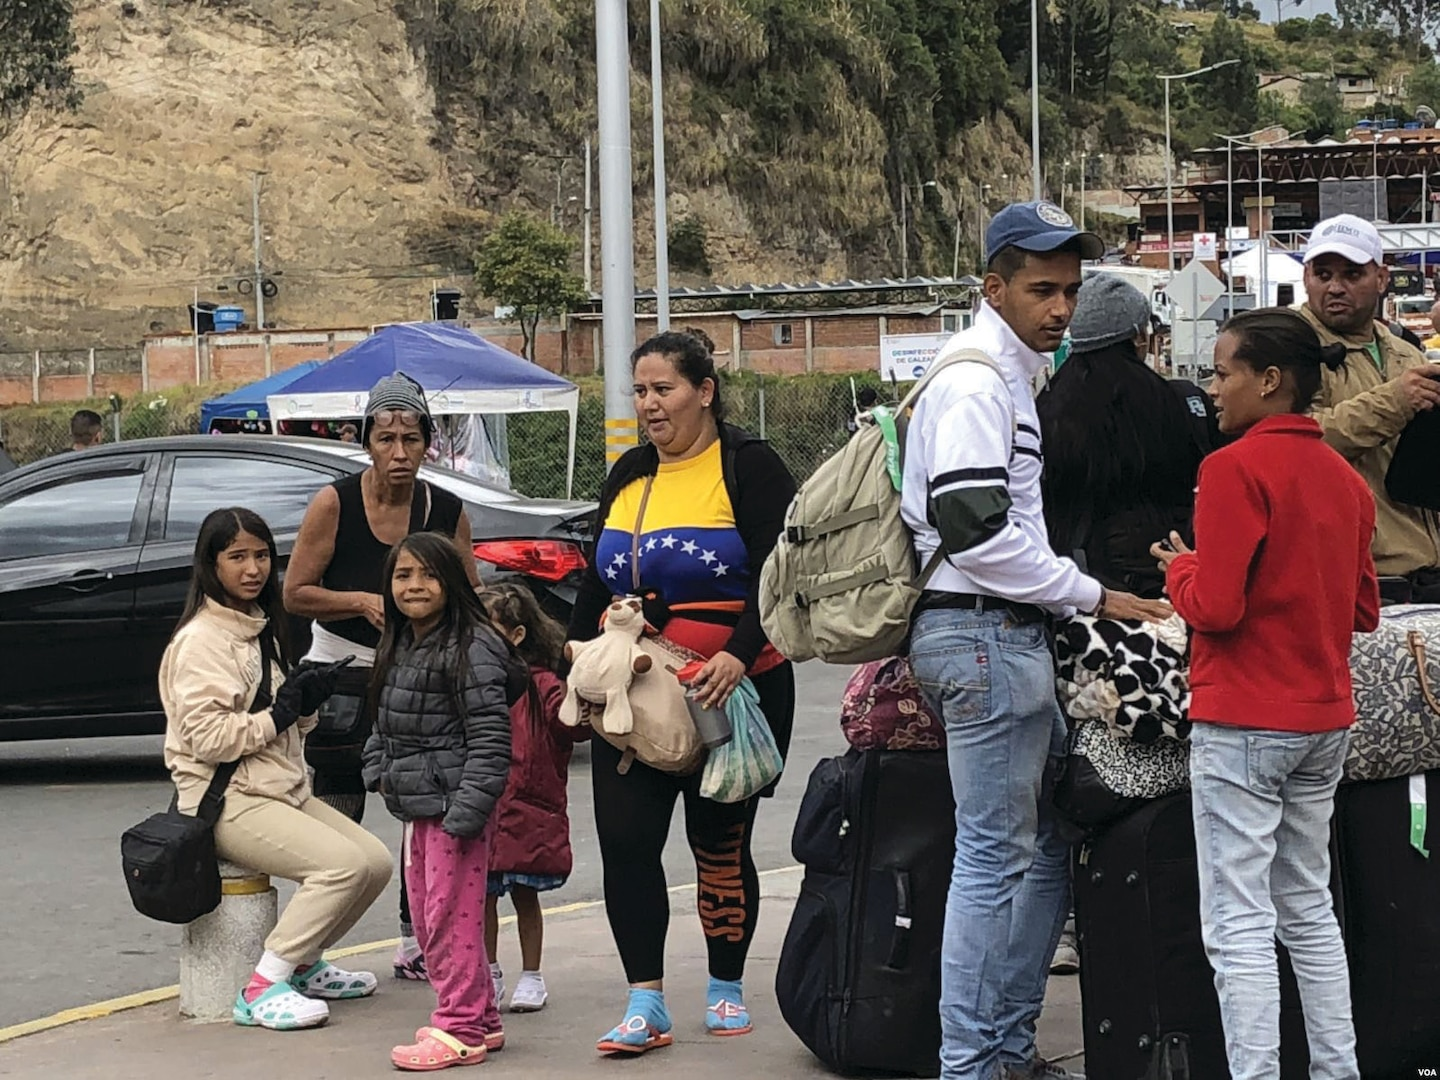 Venezuelans cross the border between Ecuador and Colombia in search of new opportunities.